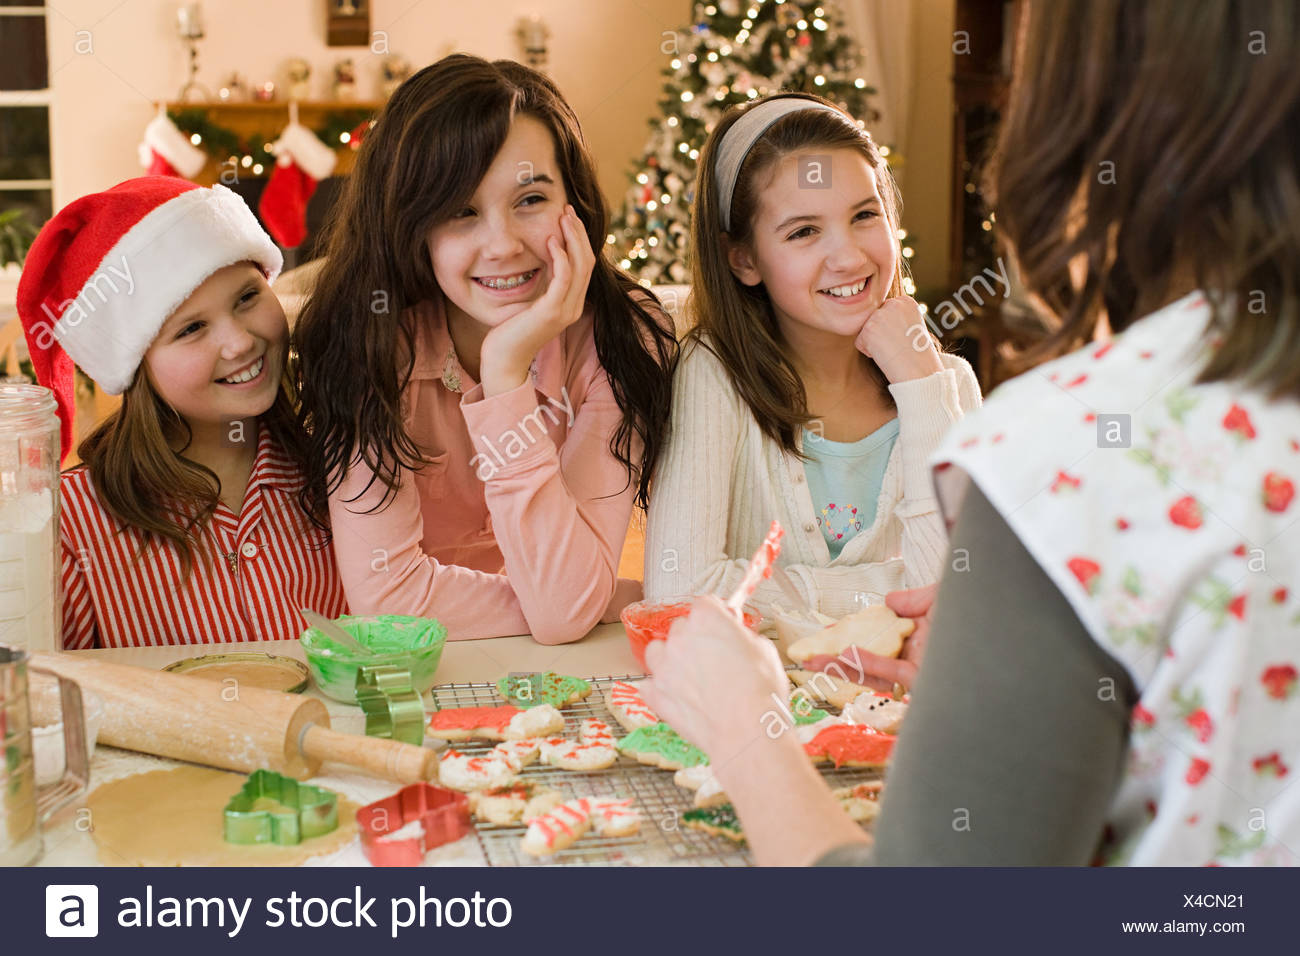 Girls and mother making cookies - Stock Image